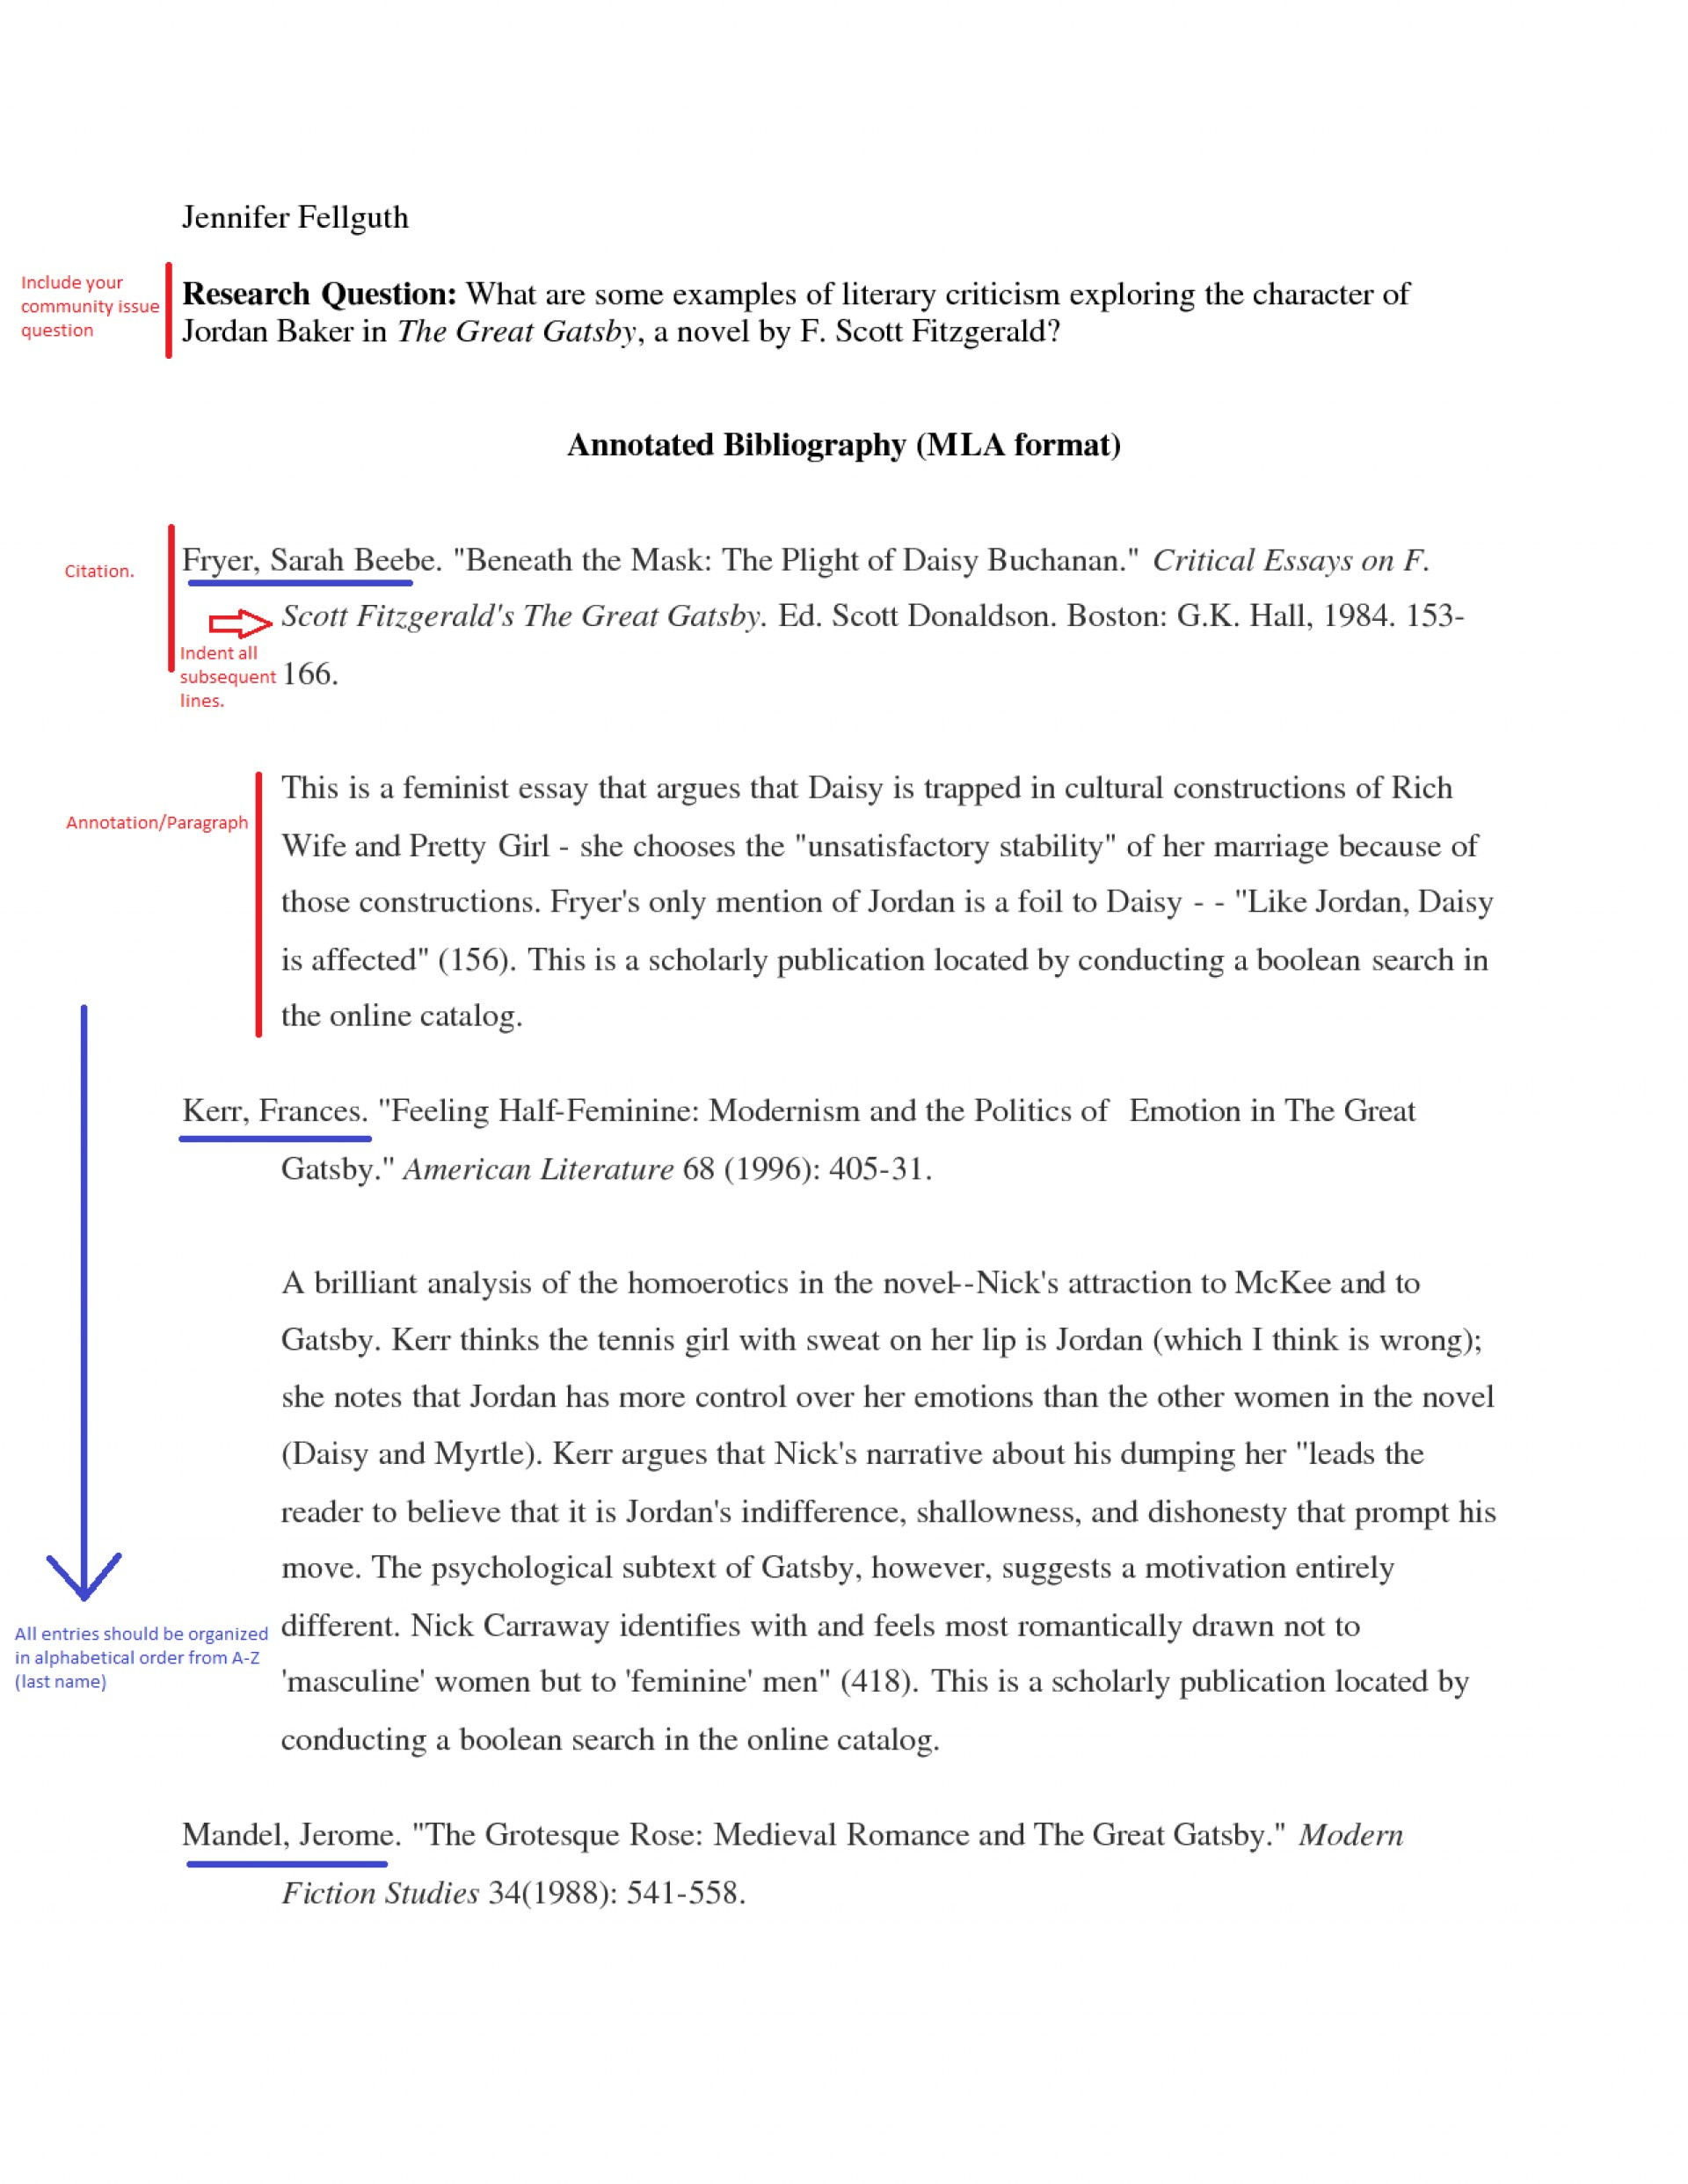 013 Essay Example Annotatedbibsampleannotated Compare And Contrast Outline Magnificent Template Comparison Sample Block Format 1920